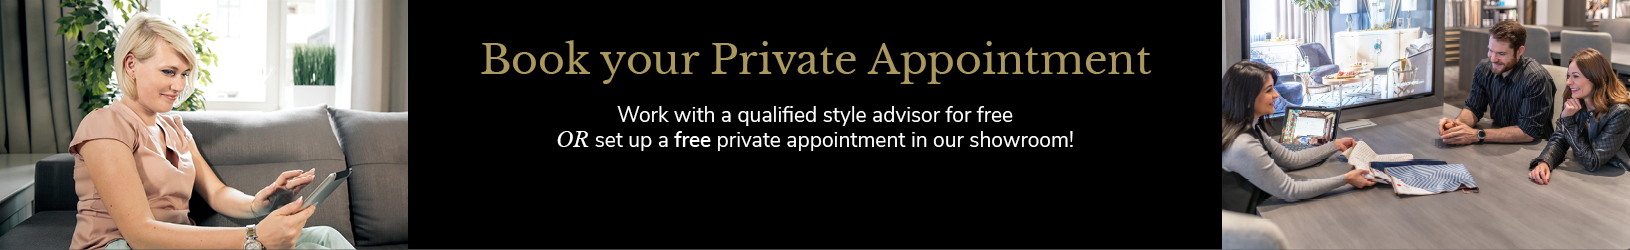 Book Private Appointment